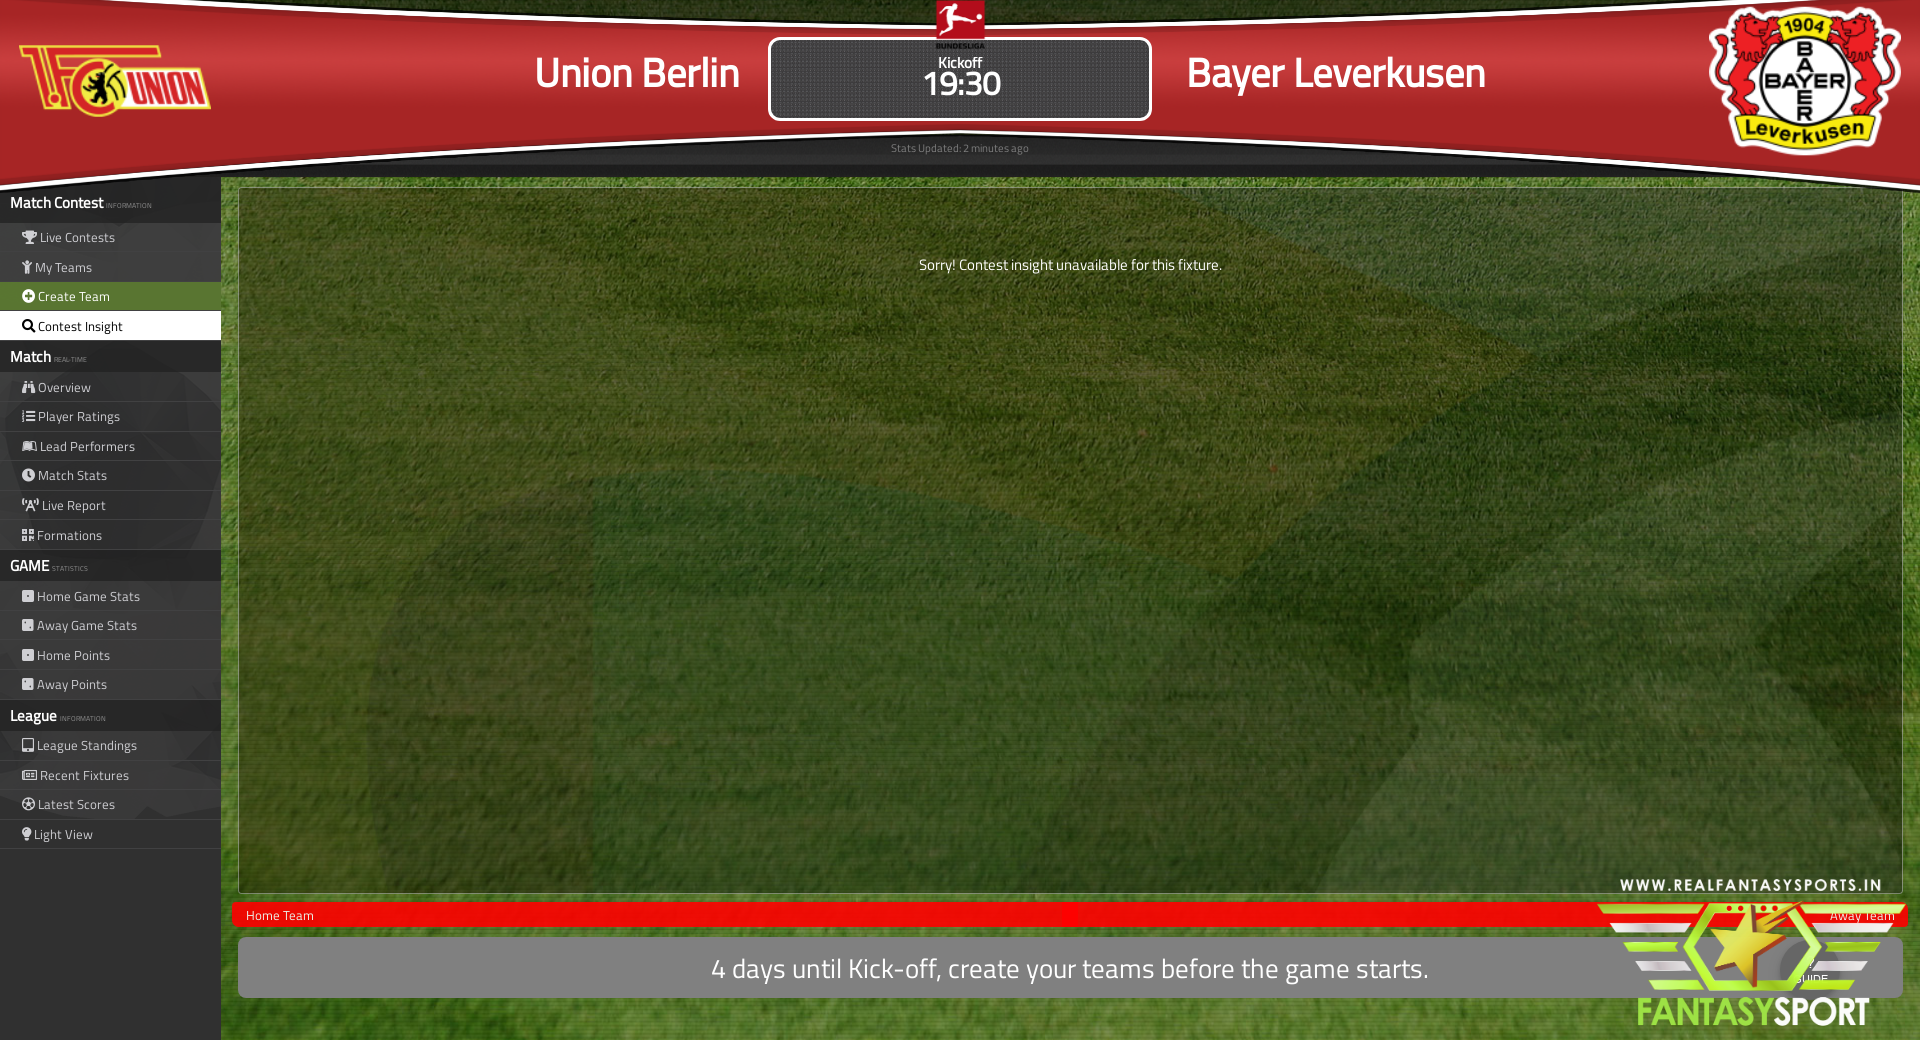 Union Berlin Vs Bayer Leverkusen Fantasy Football Team